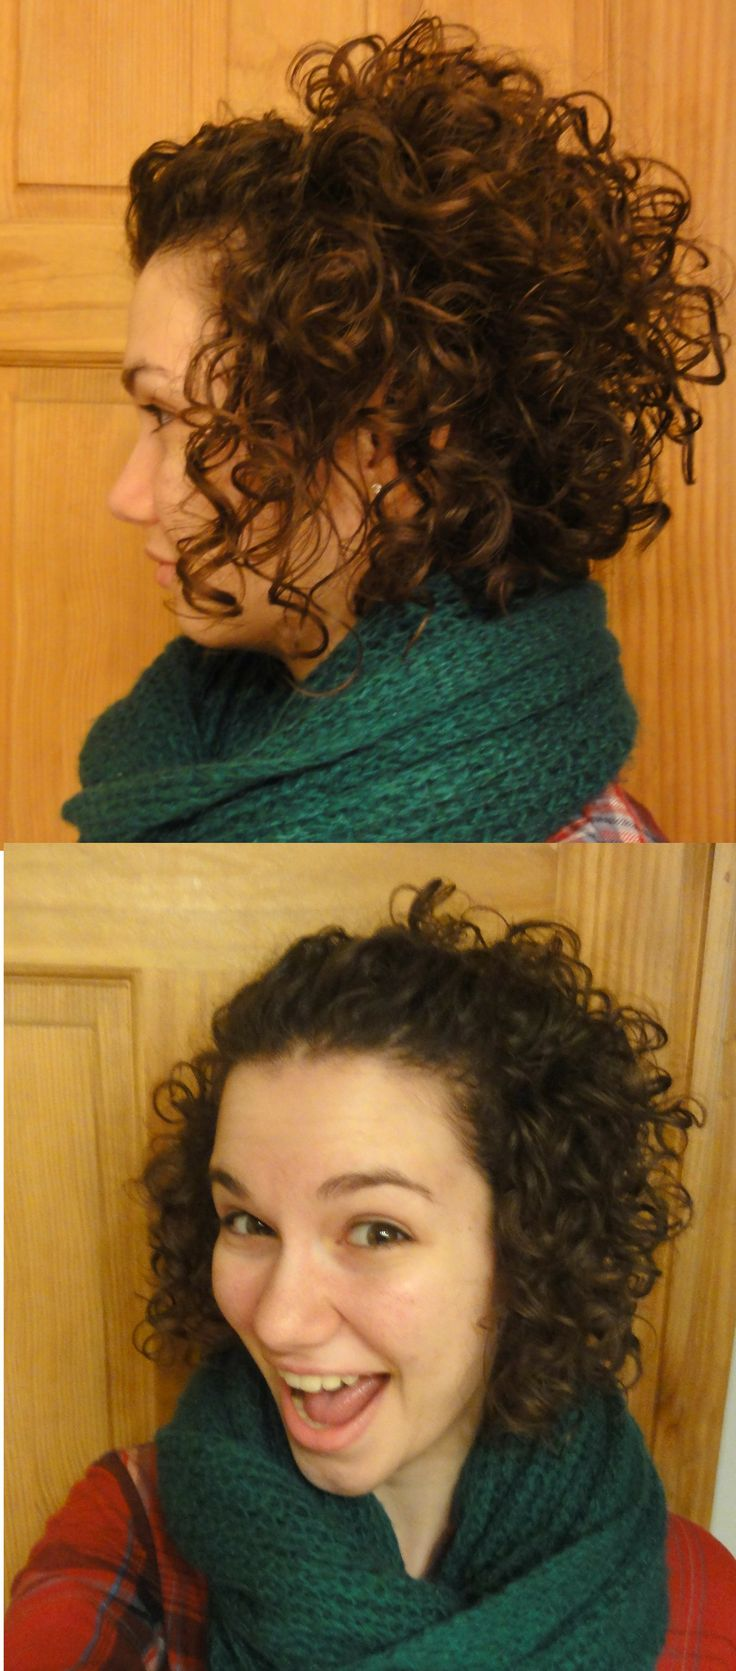 Cute Hairdo for Short, Curly Hair: pin back the top part of your ...